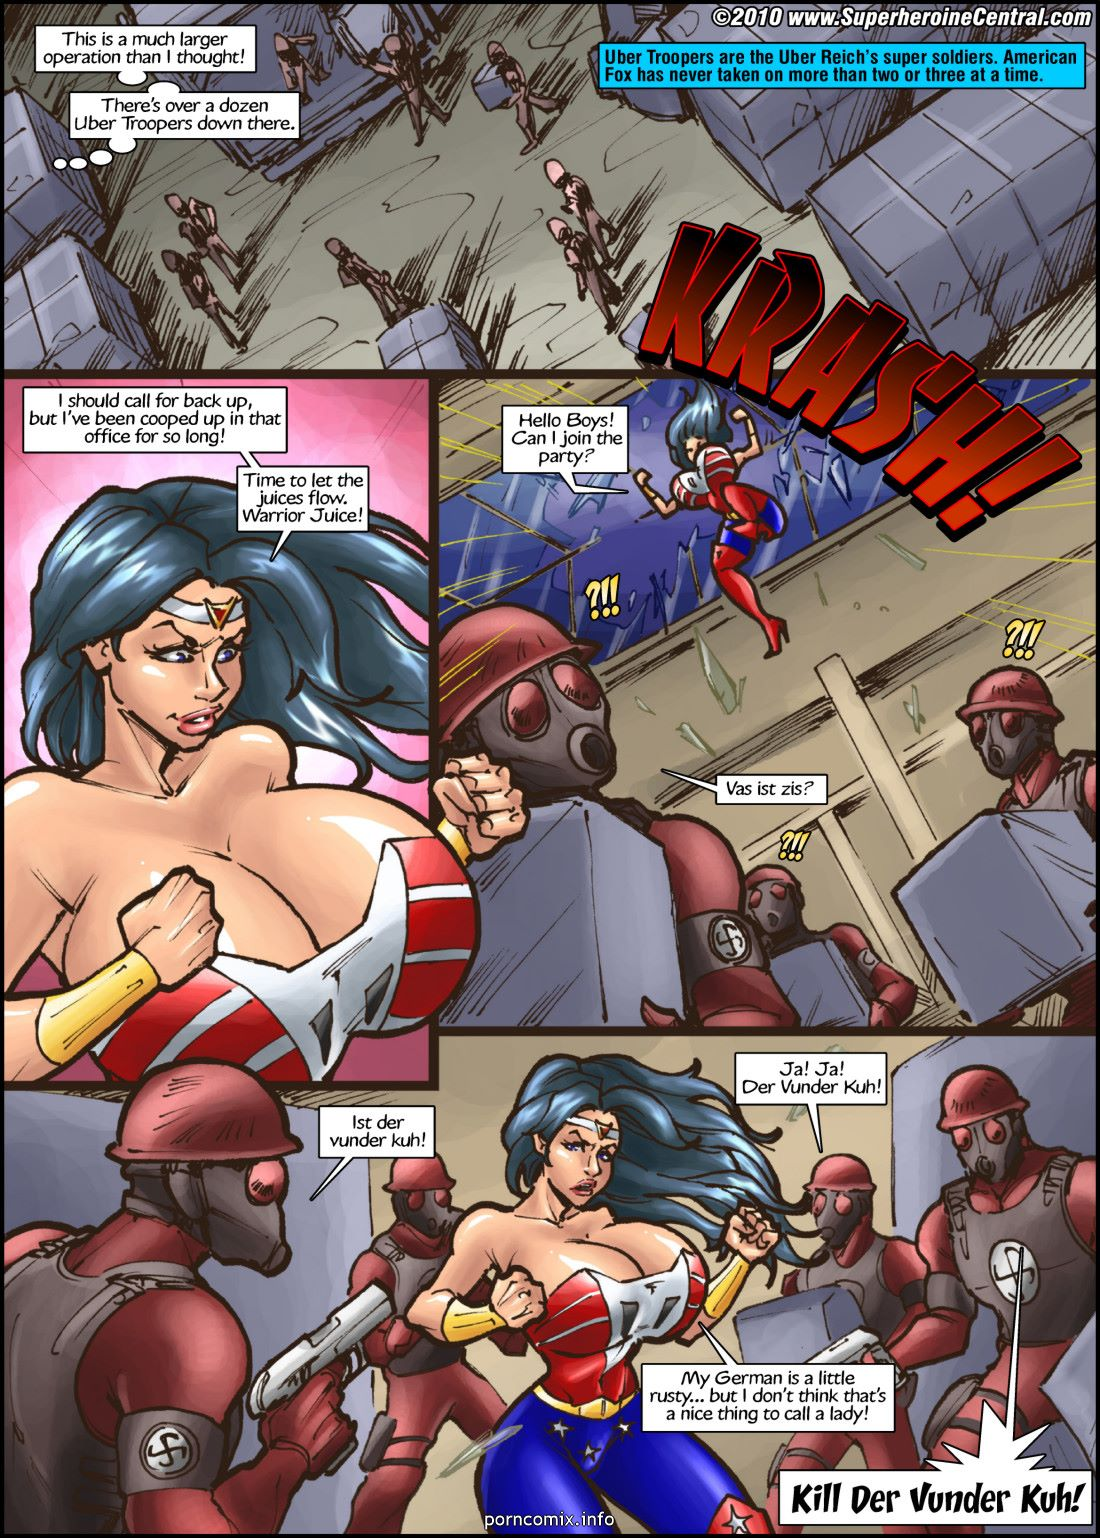 American Fox- Spotlight on Terror- Superheroine